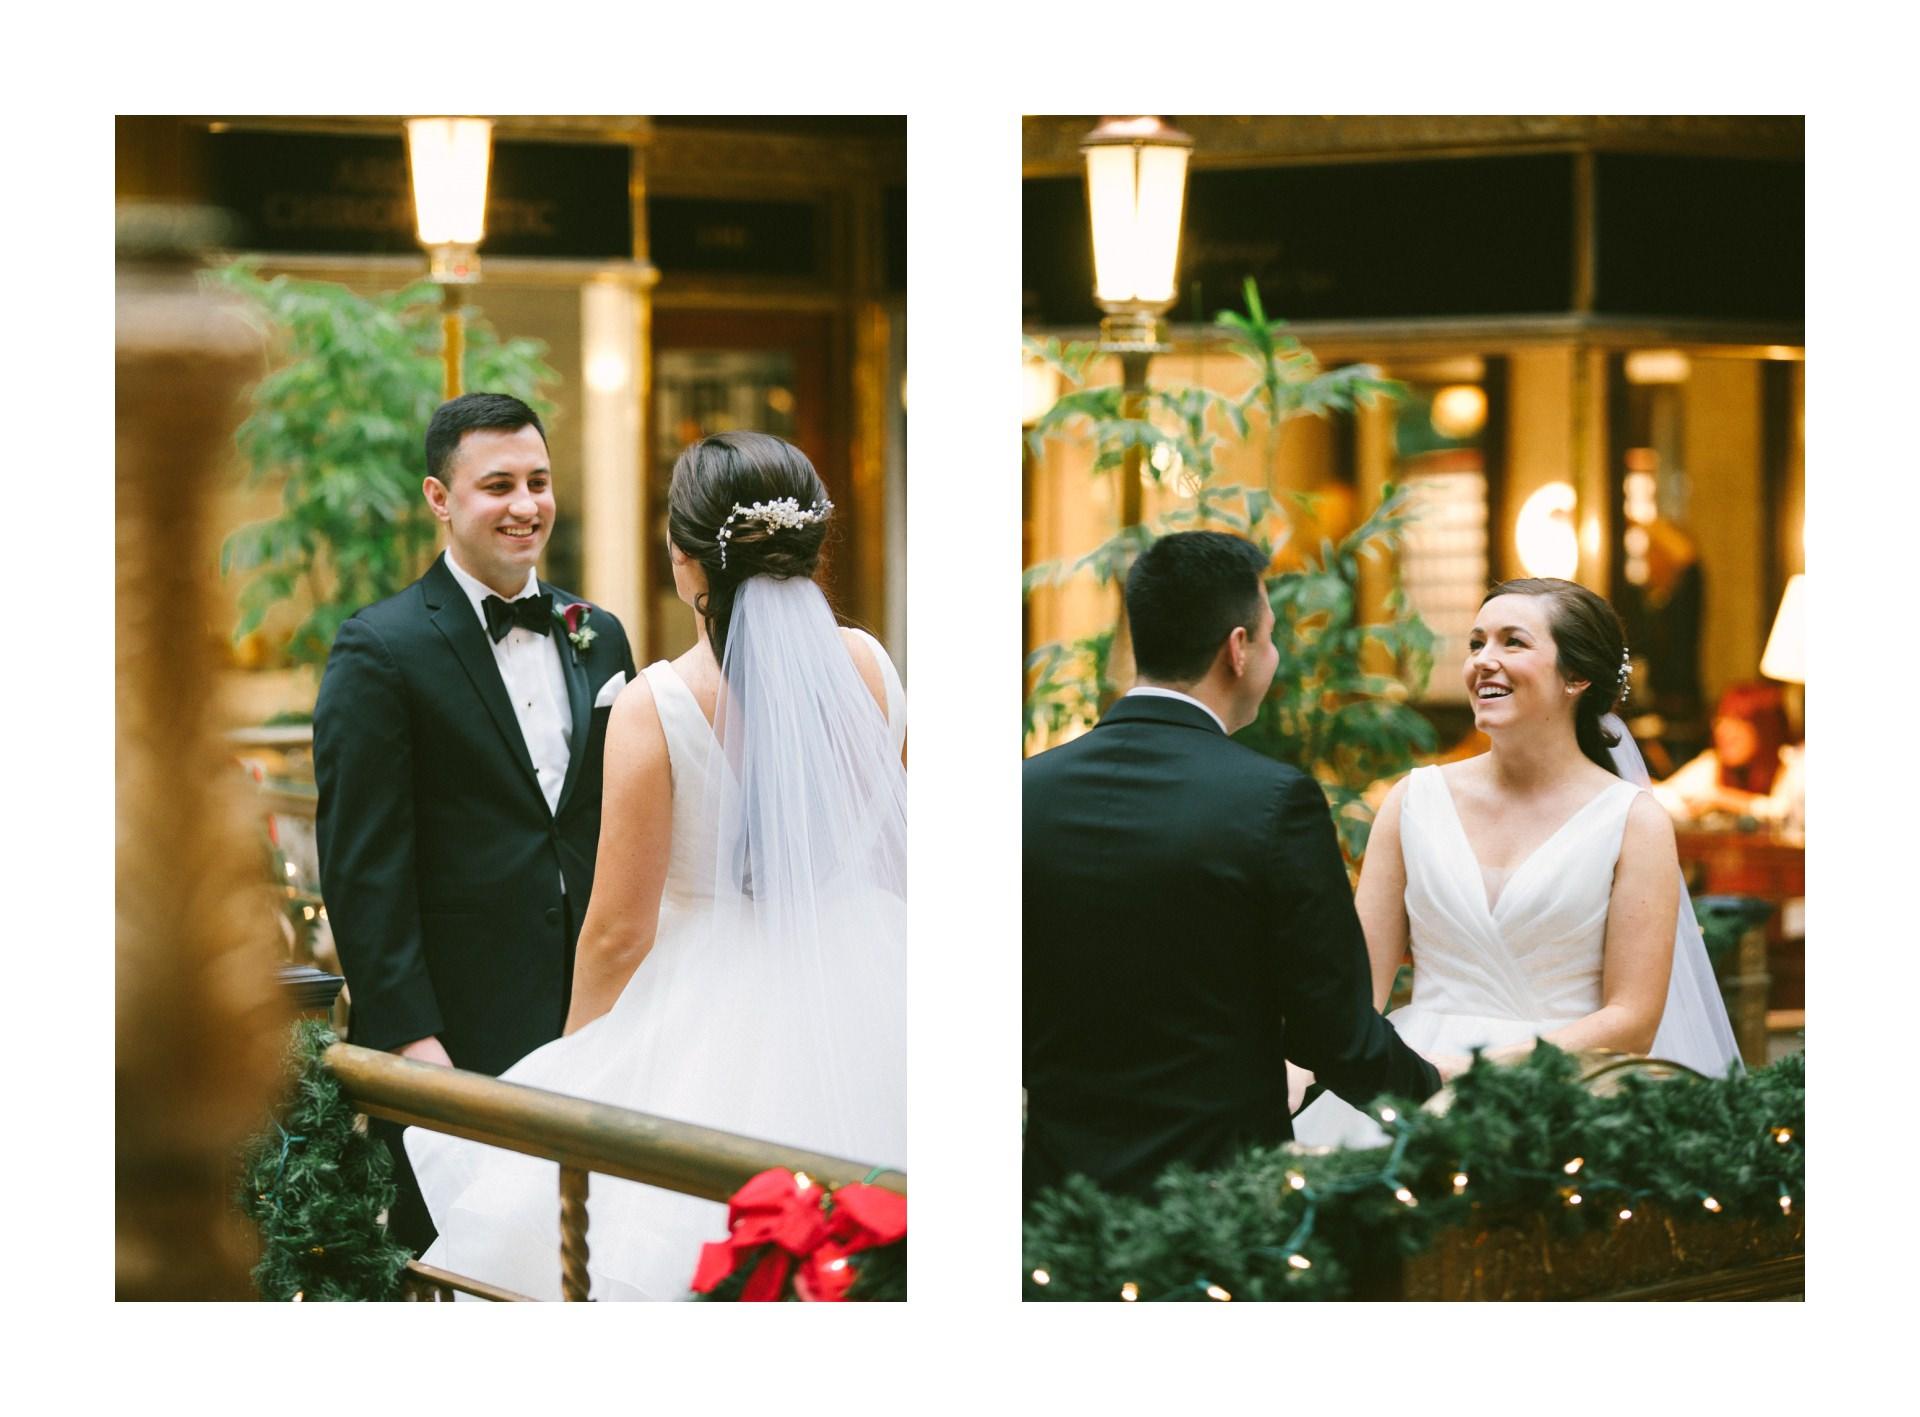 Hyatt Old Arcade Wedding Photographer in Cleveland 1 27.jpg